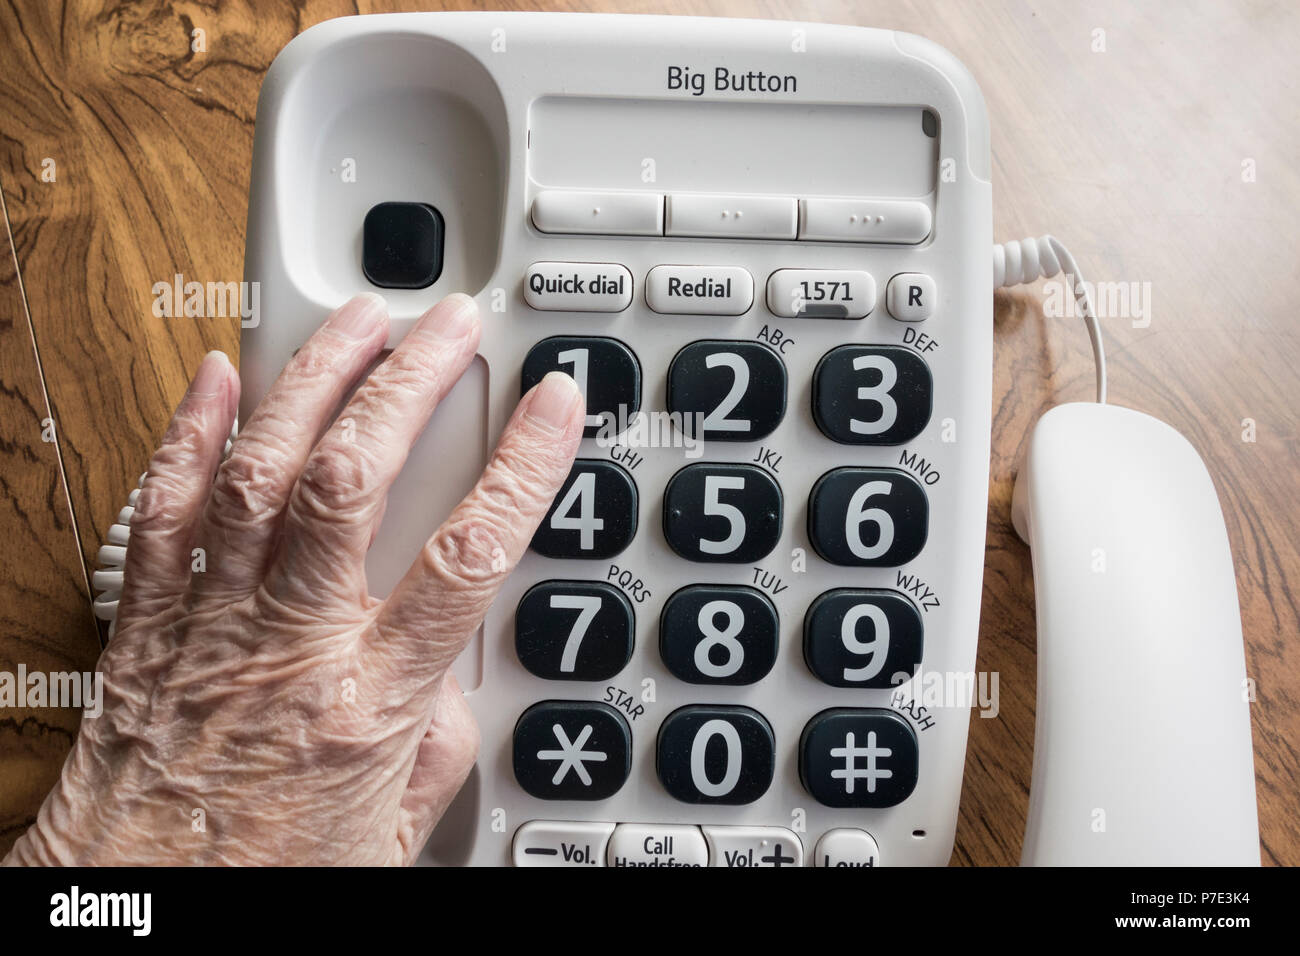 Visually impaired elderly woman dialling NHS 111 help line on big button telephone. Stock Photo